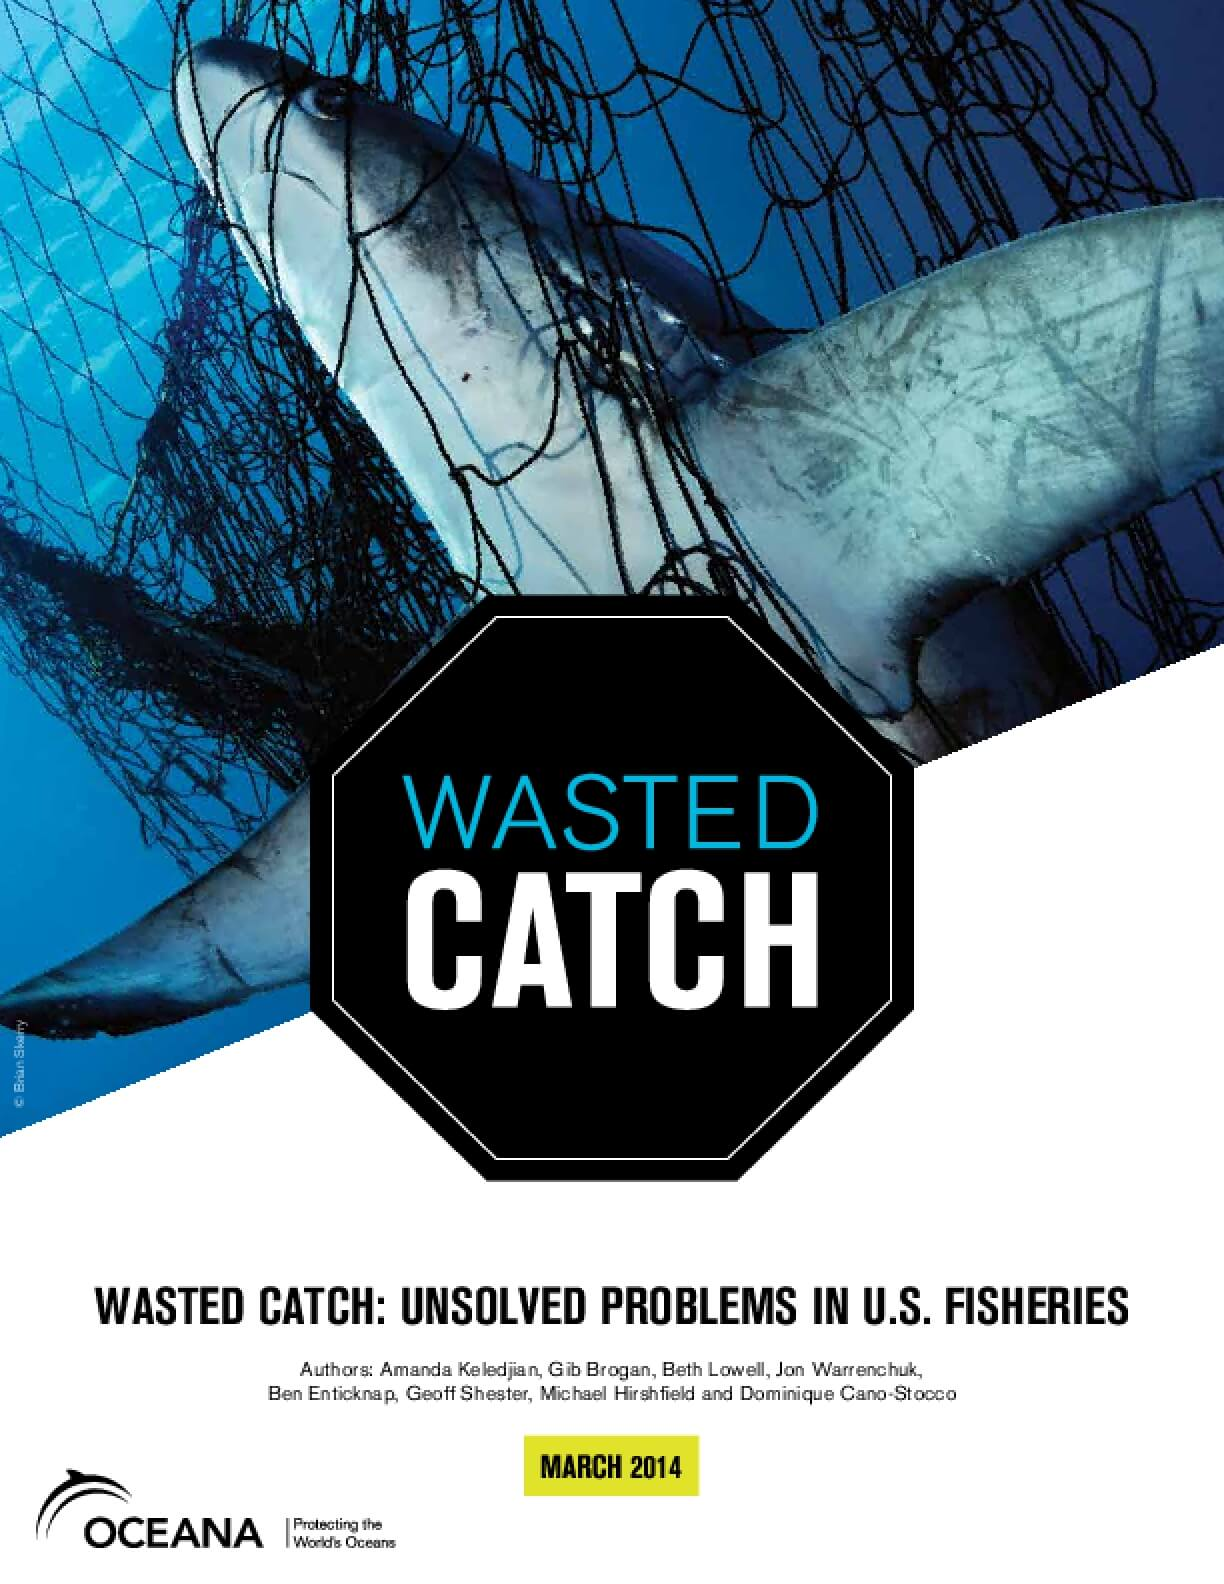 Wasted Catch: Unsolved Problems in U.S. Fisheries